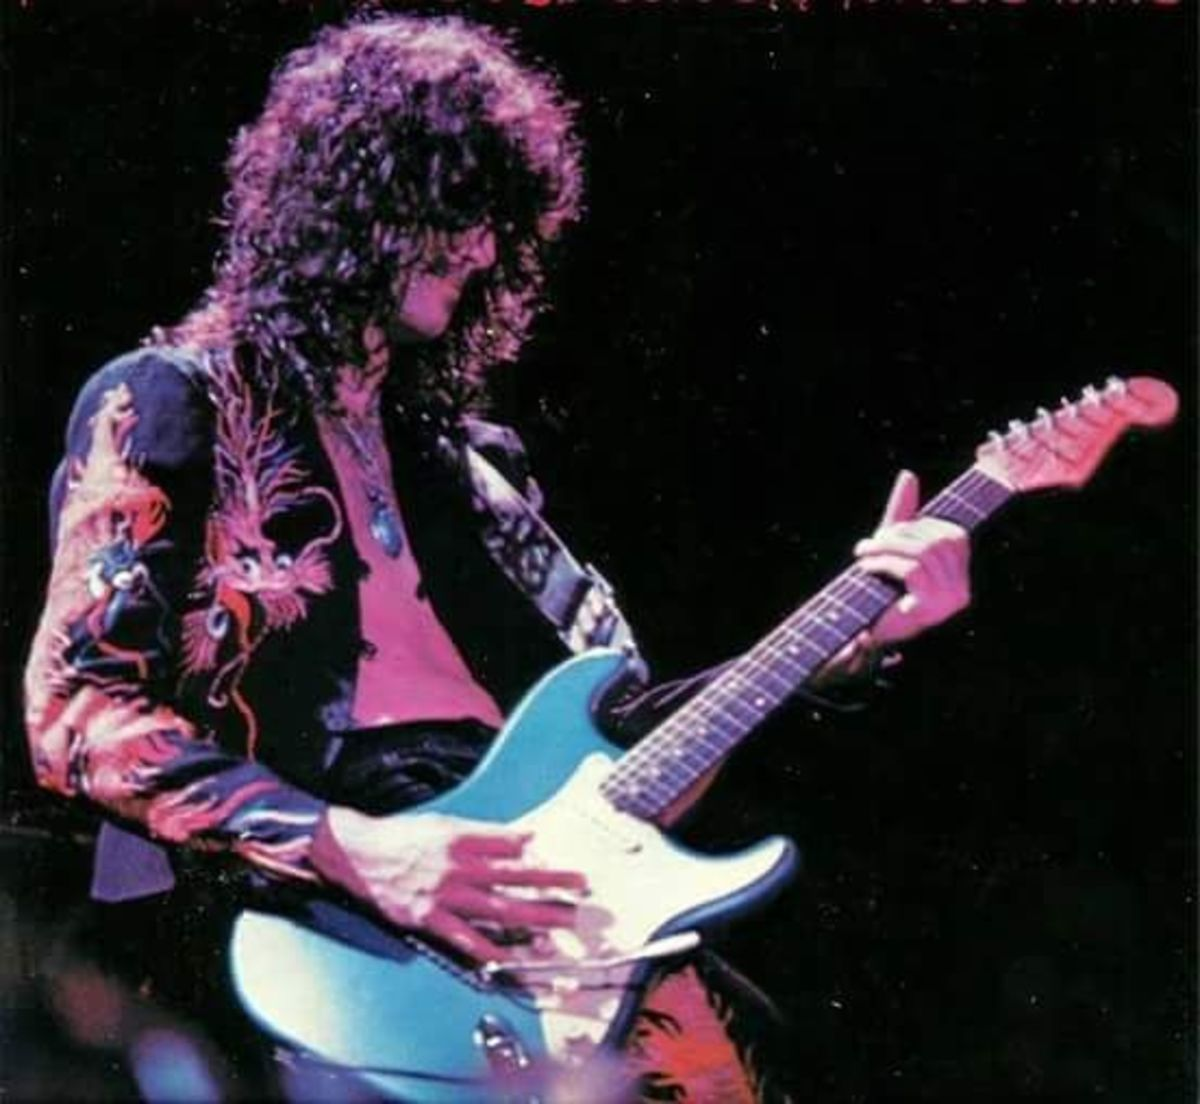 Jimmy Page playing a Fender Stratocaster, presumably during No Quarter, at Earls Court on the 23rd of May 1975